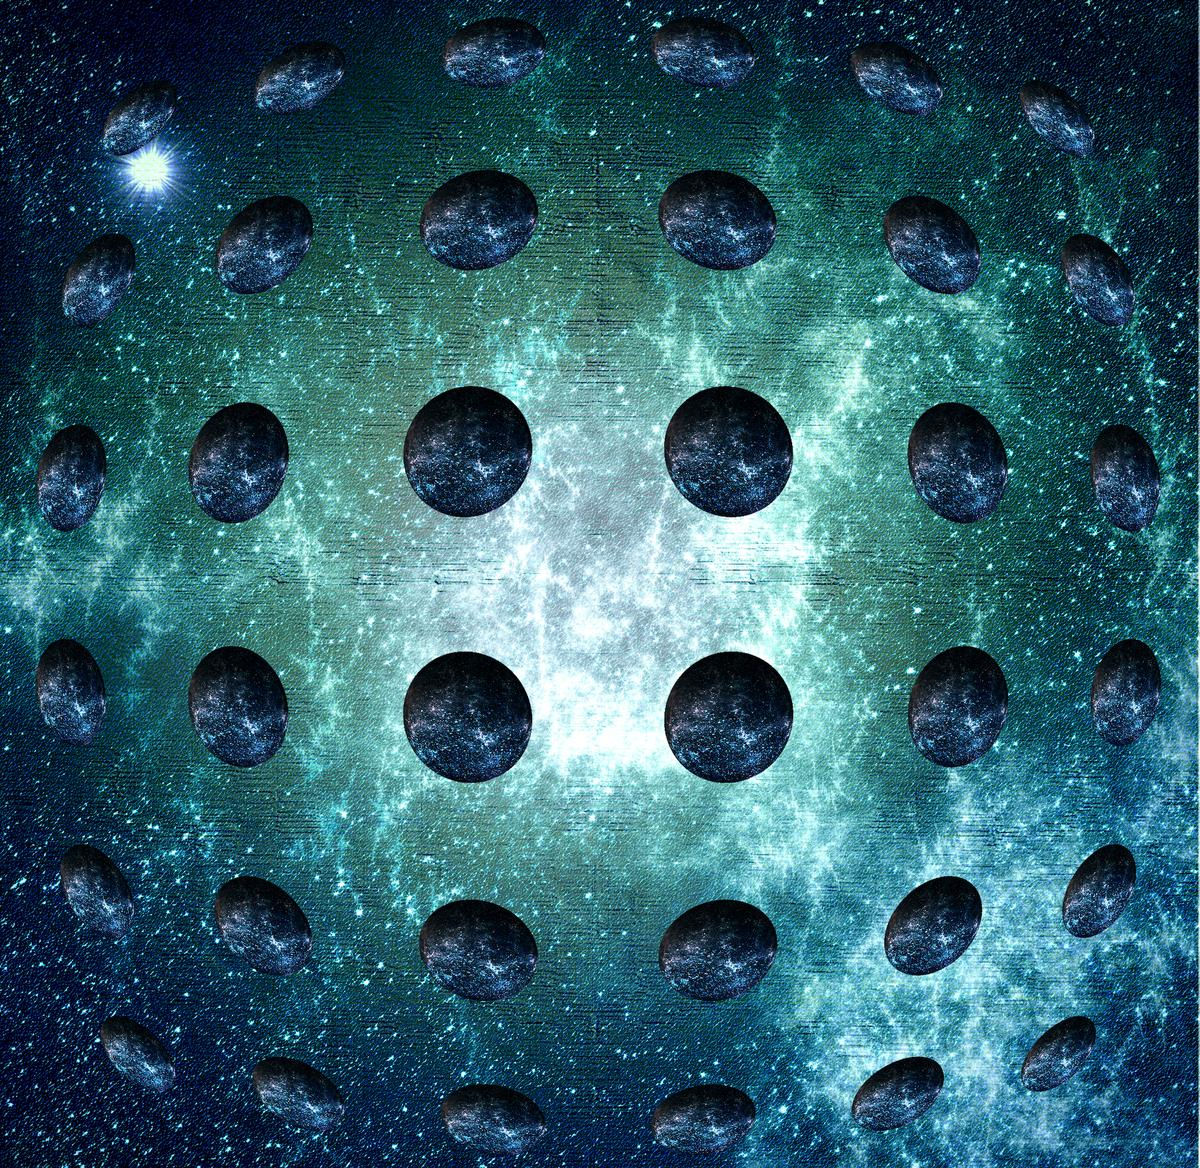 New simulations suggest life could be more common throughout the multiverse – or perhaps show that the multiverse doesn't exist after all